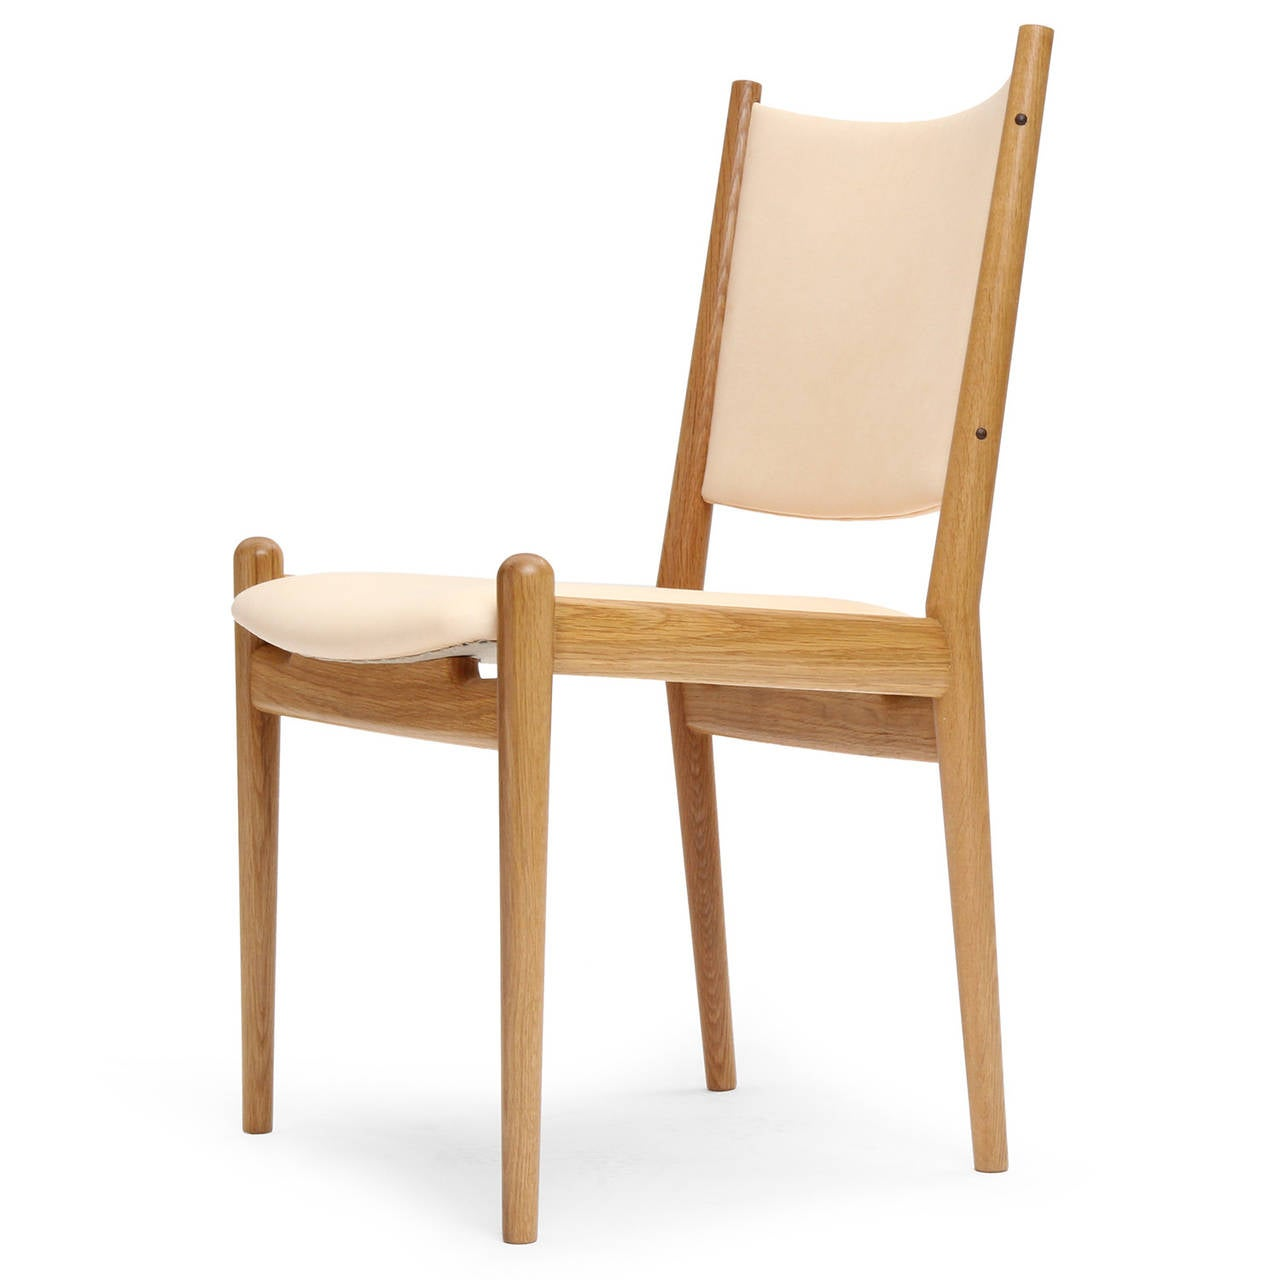 Scandinavian Modern White Oak and Leather Dining Chairs by Hans Wegner For Sale